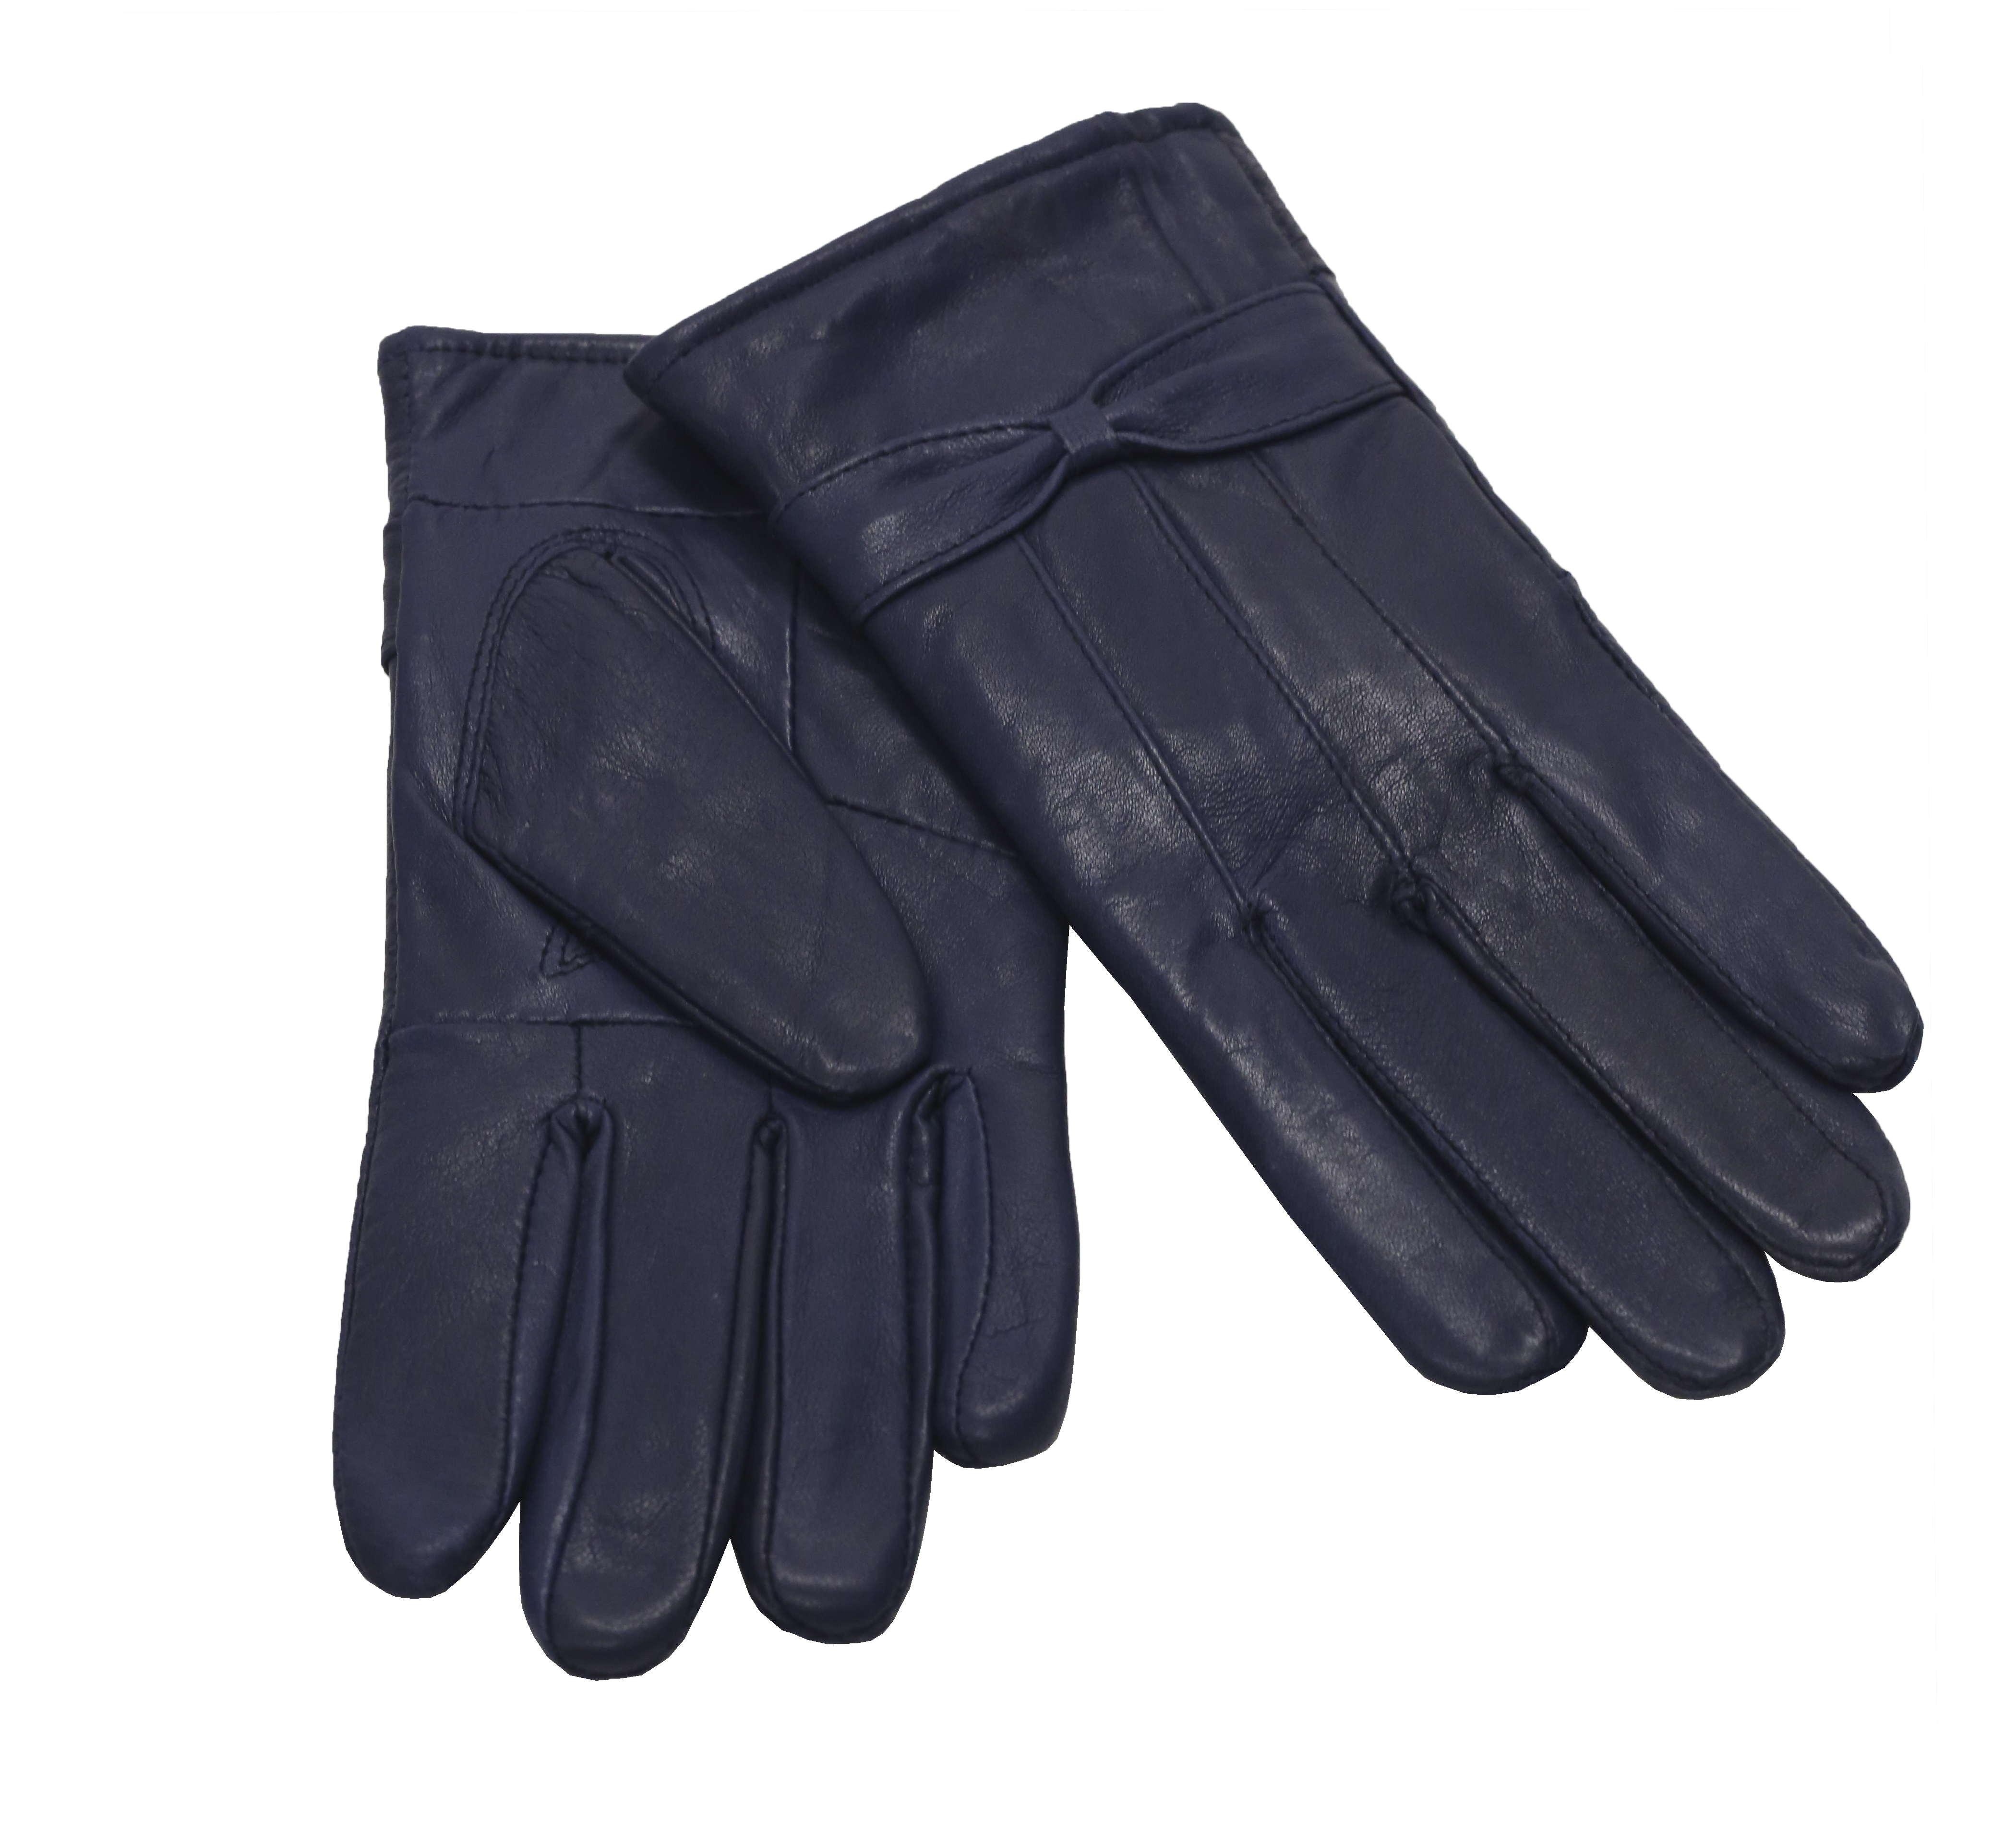 MoDA Ms Barcelona Womens Genuine Leather Assorted Colors Cold Weather Gloves with Bow C0101 Blue